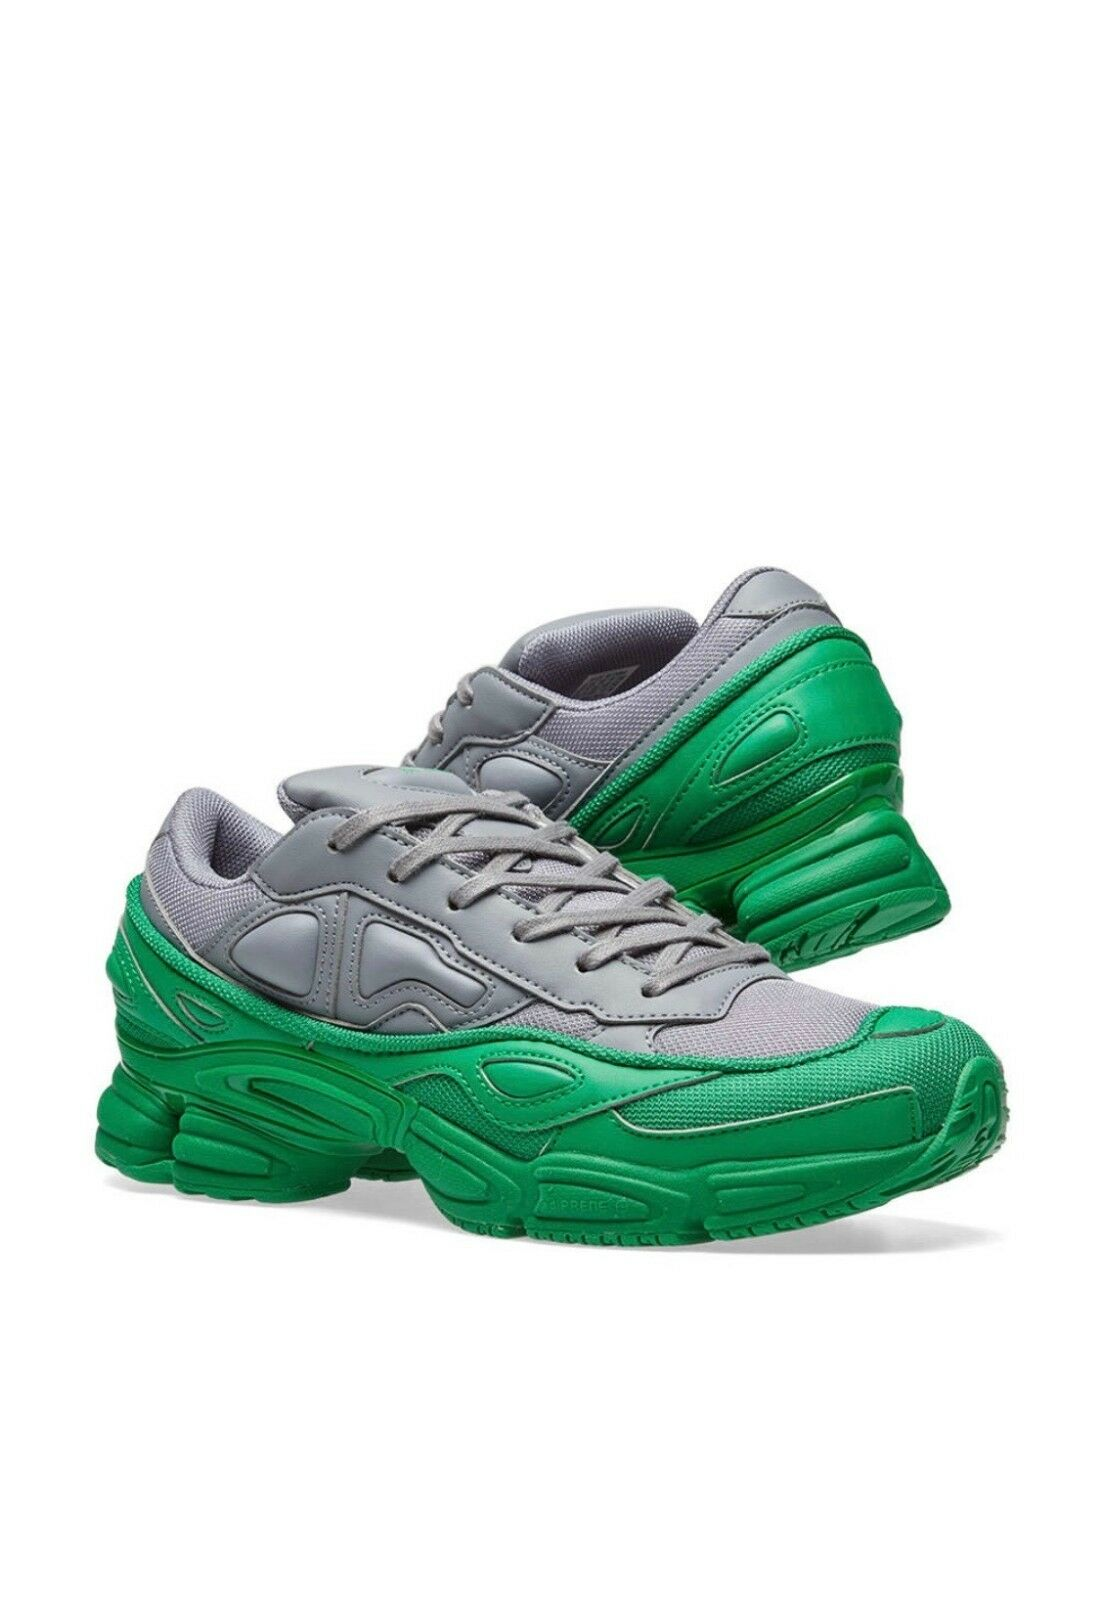 adidas x raf simons rs ozweego iii Vert    / Gris  fw18 maintenant disponibles 1c4625